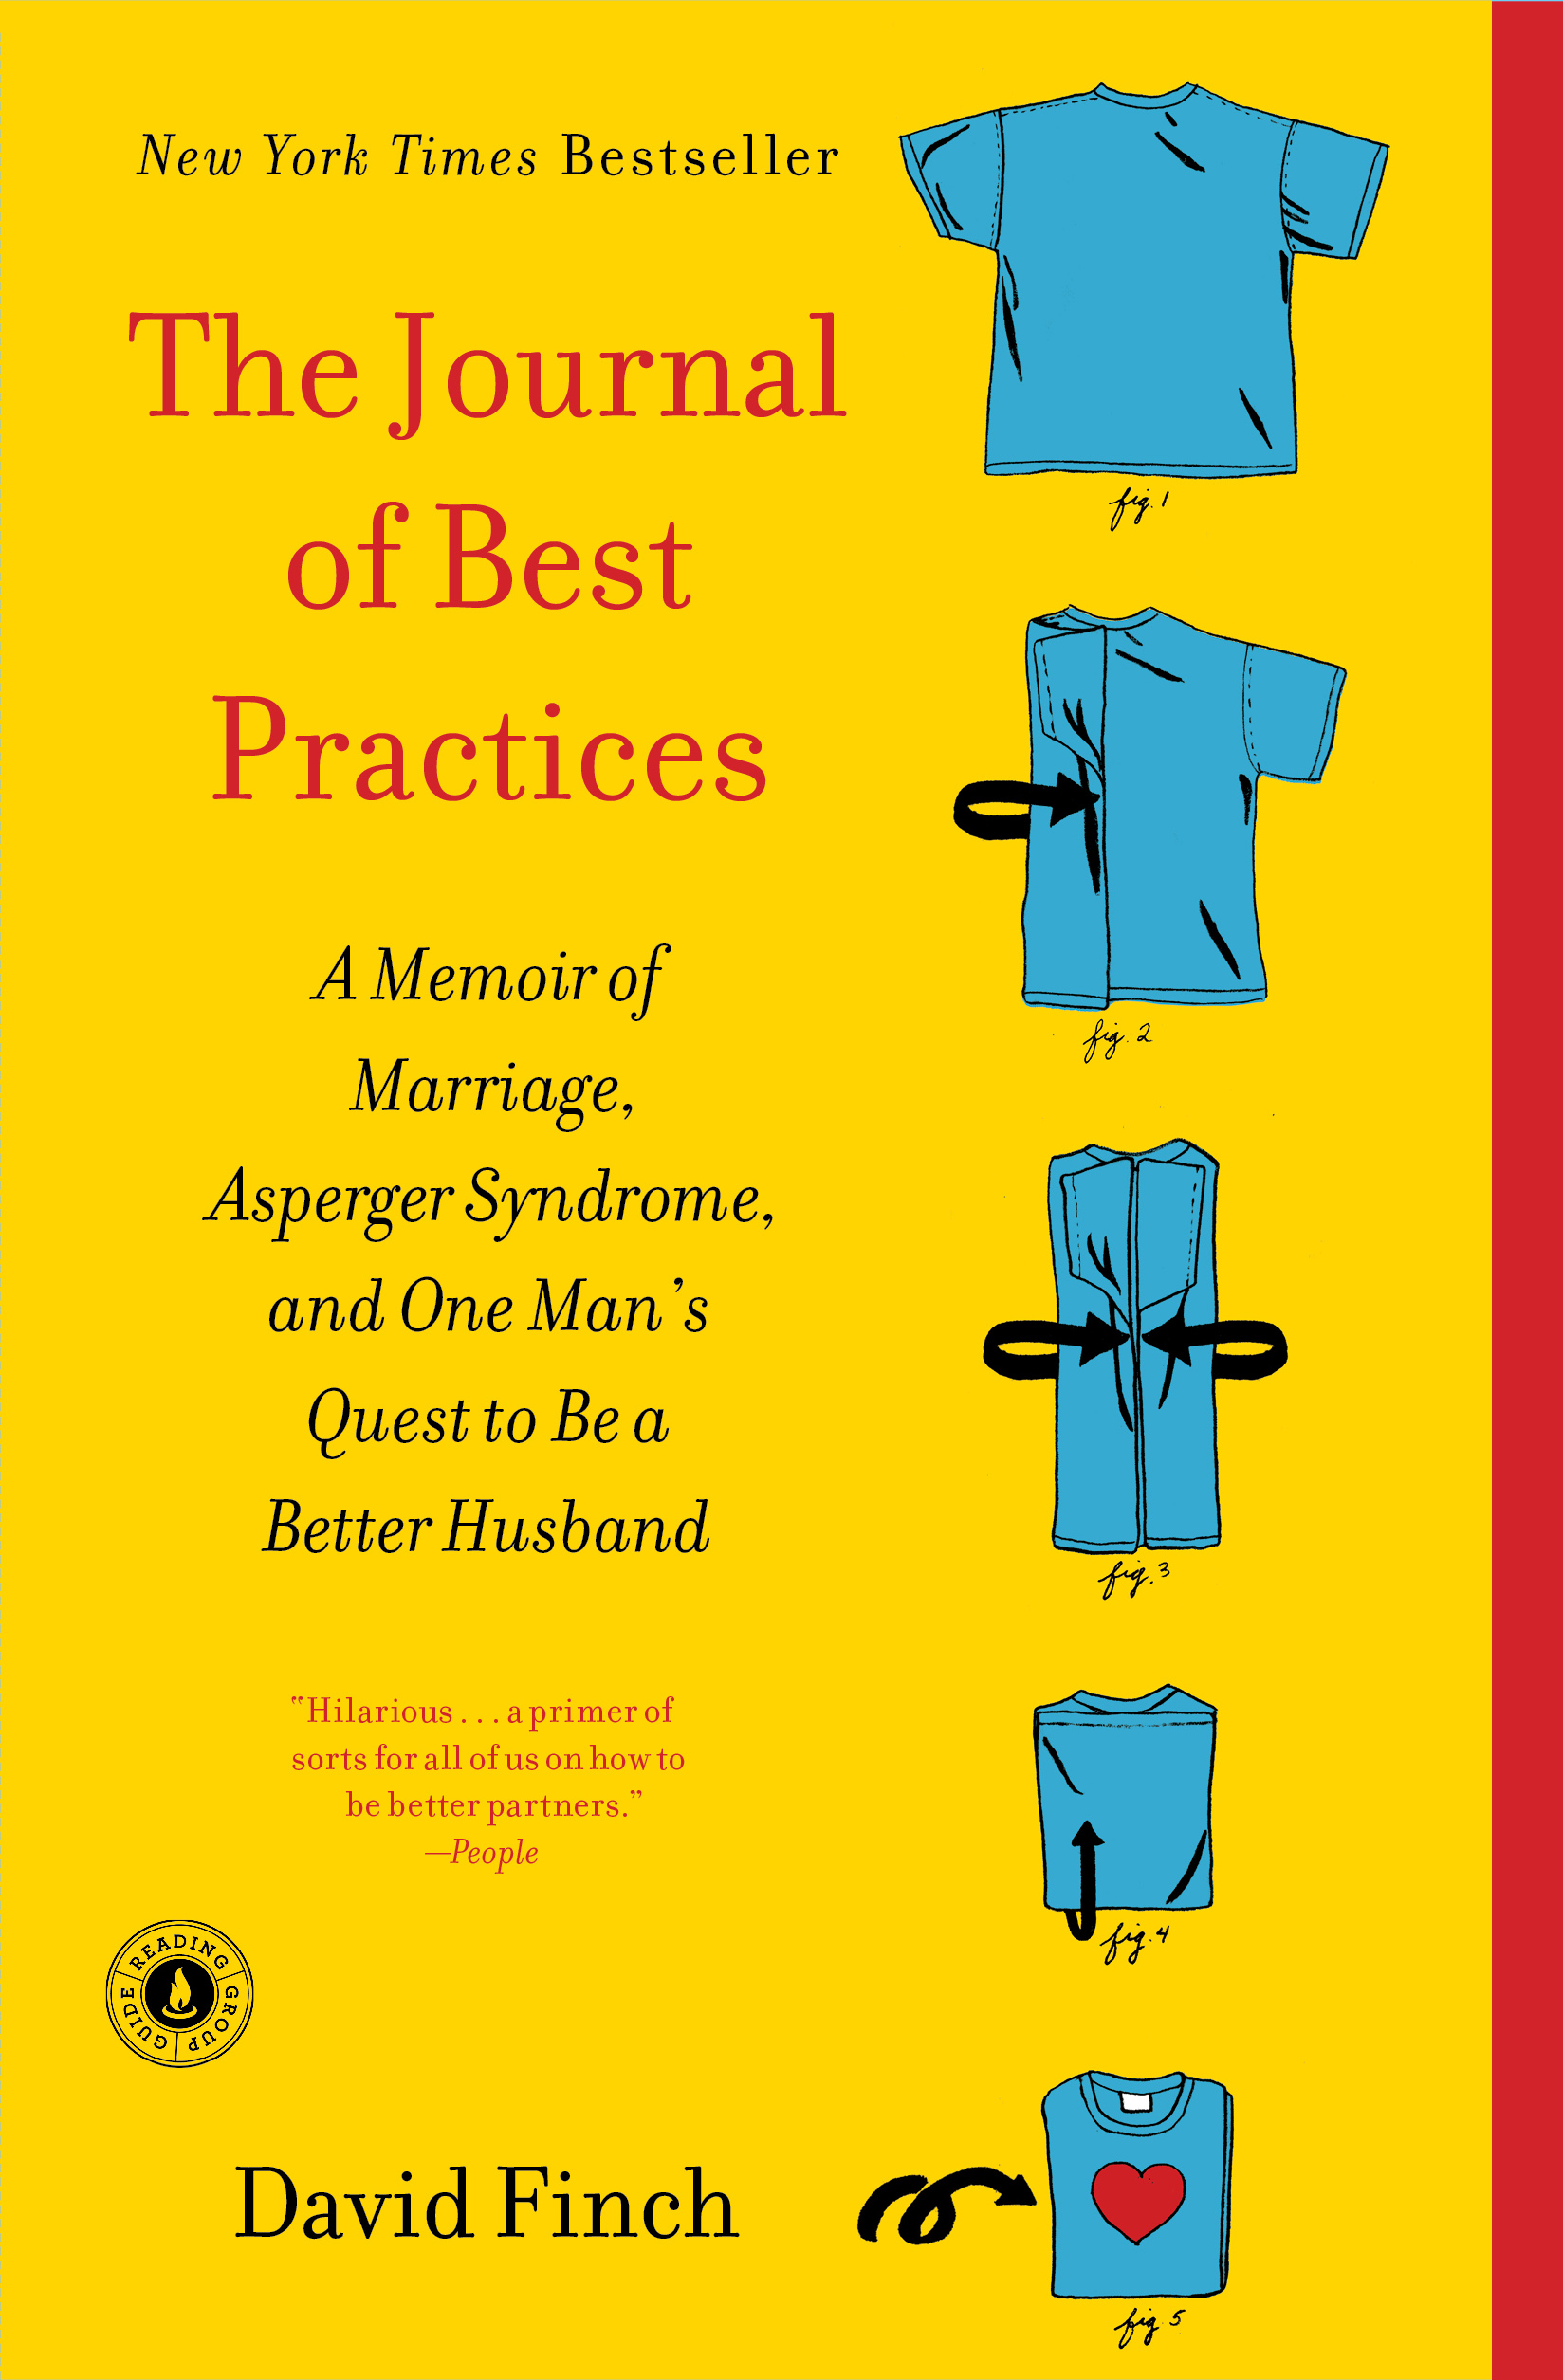 The Journal of Best Practices: A Memoir of Marriage, Asperger Syndrome, and One Man's Quest to Be a Better Husband by David Finch